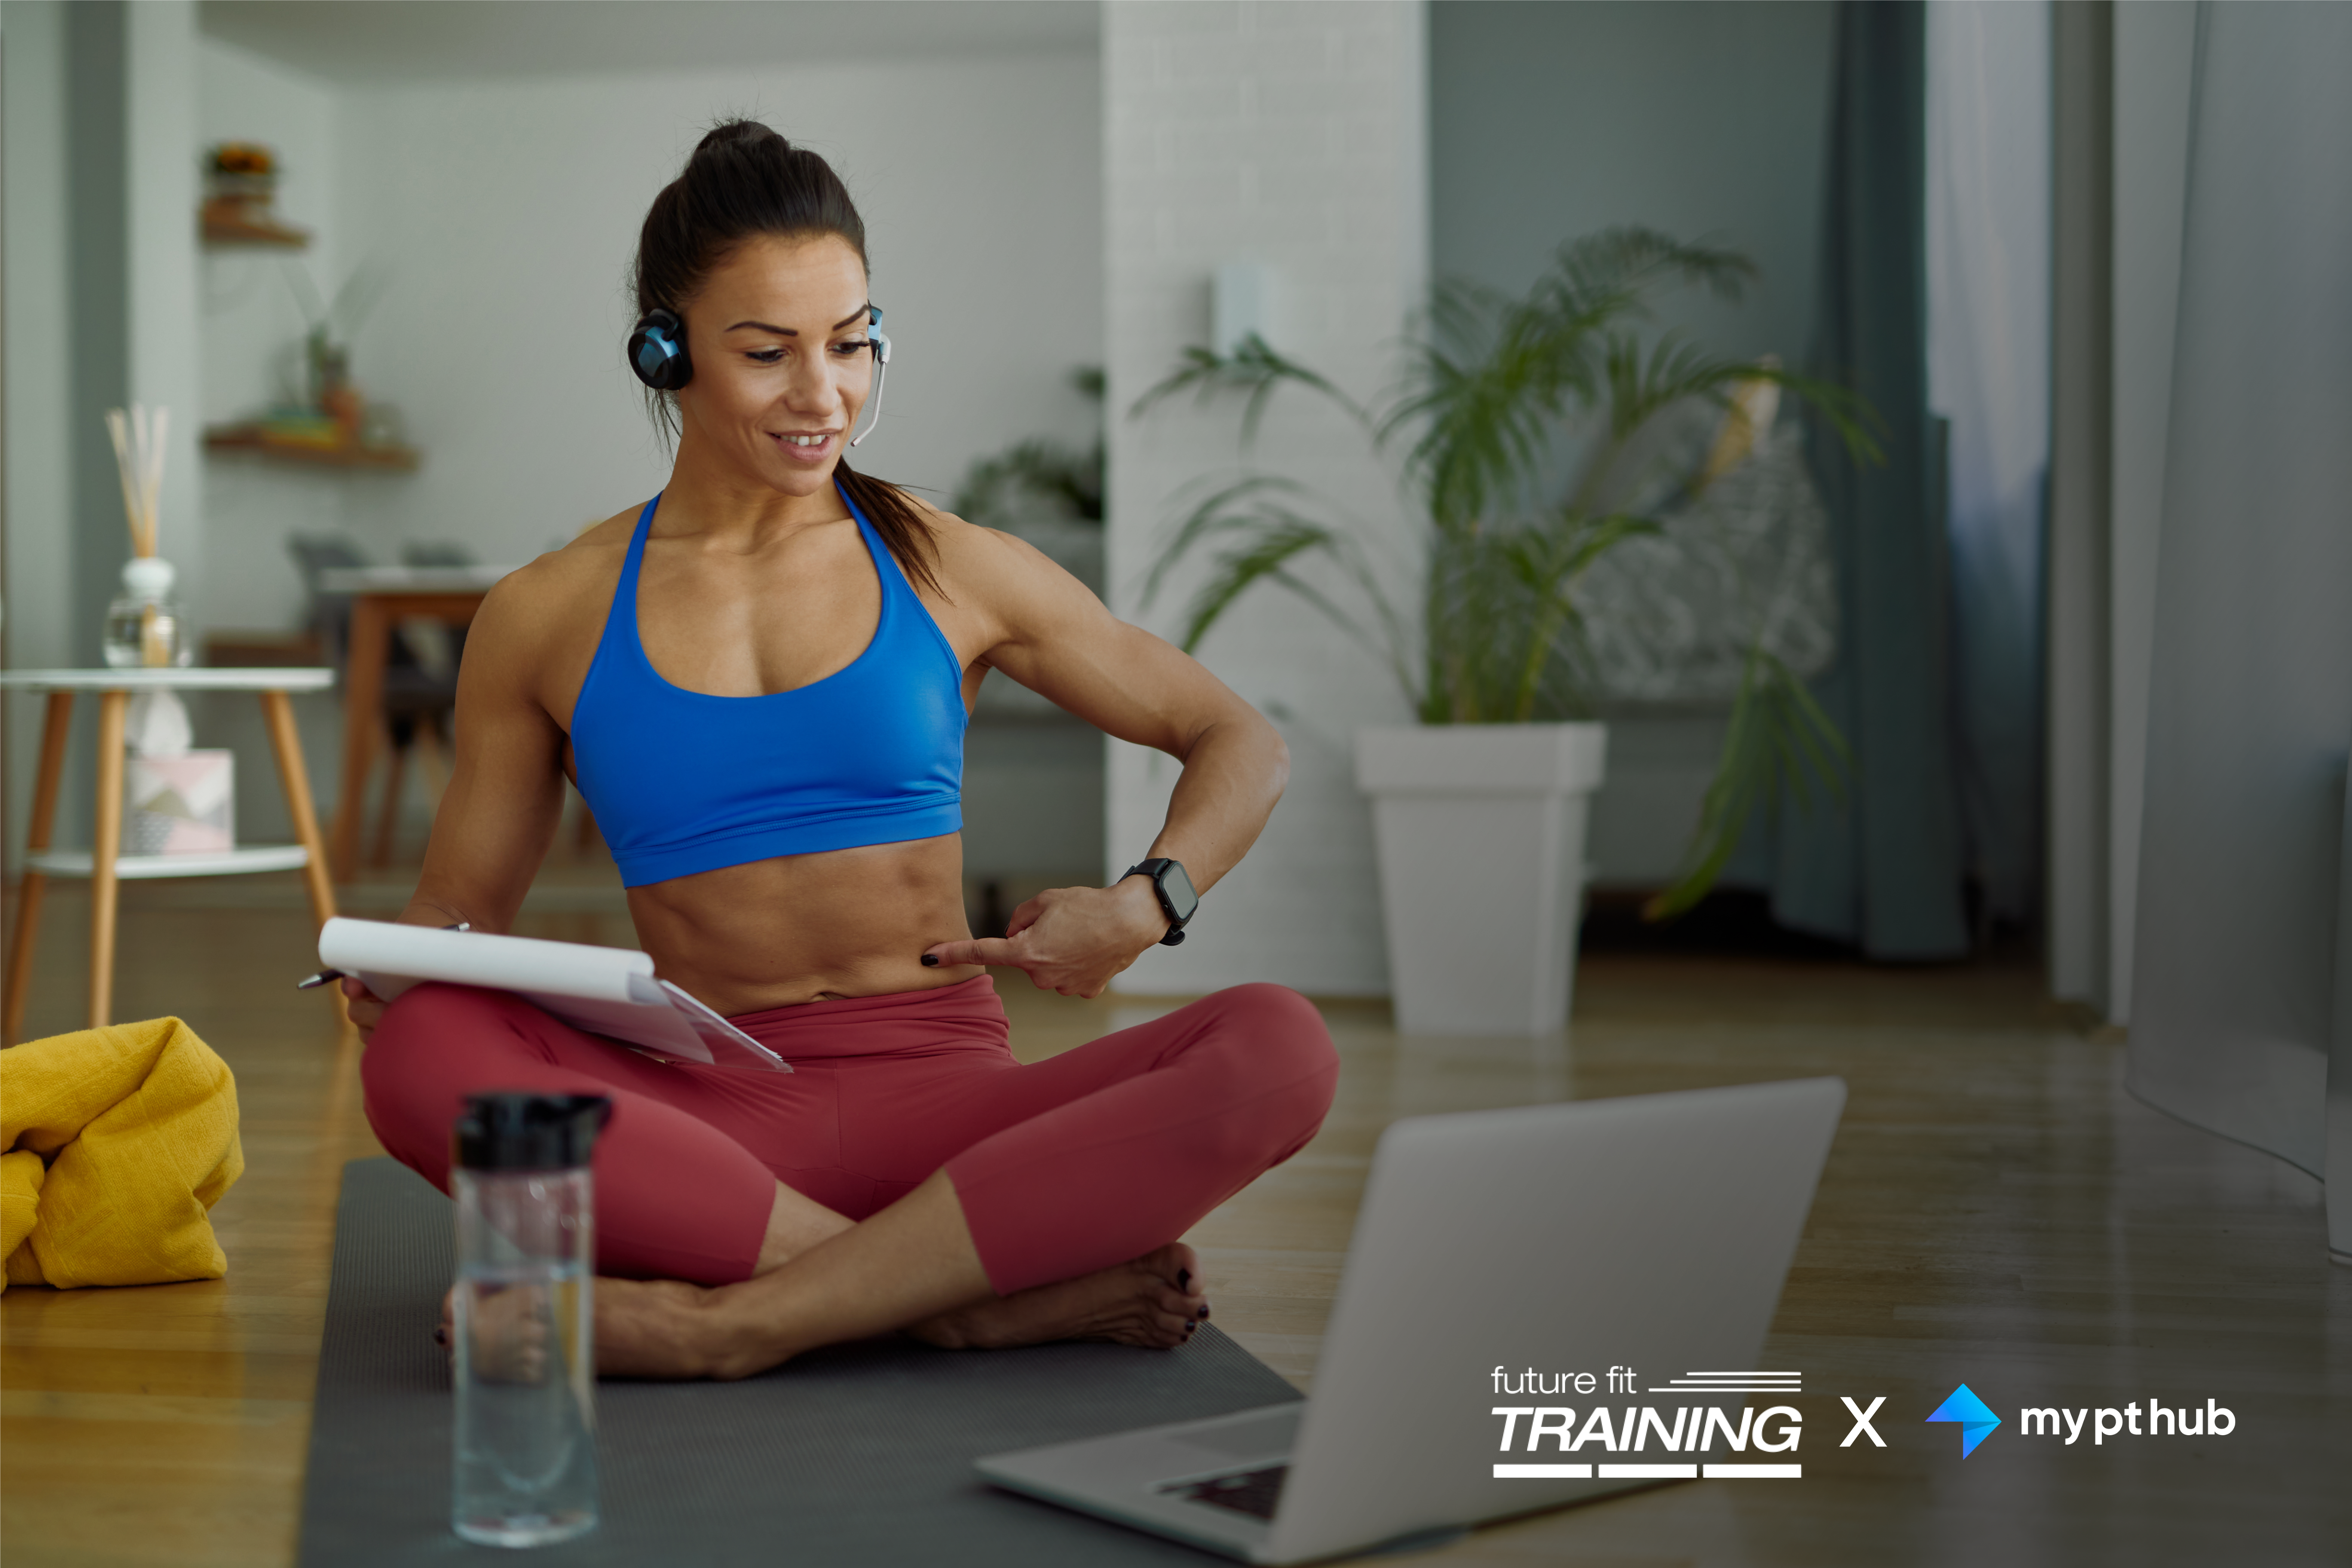 Future Fit Training Launches New Online Coaching Course in Partnership with My PT Hub